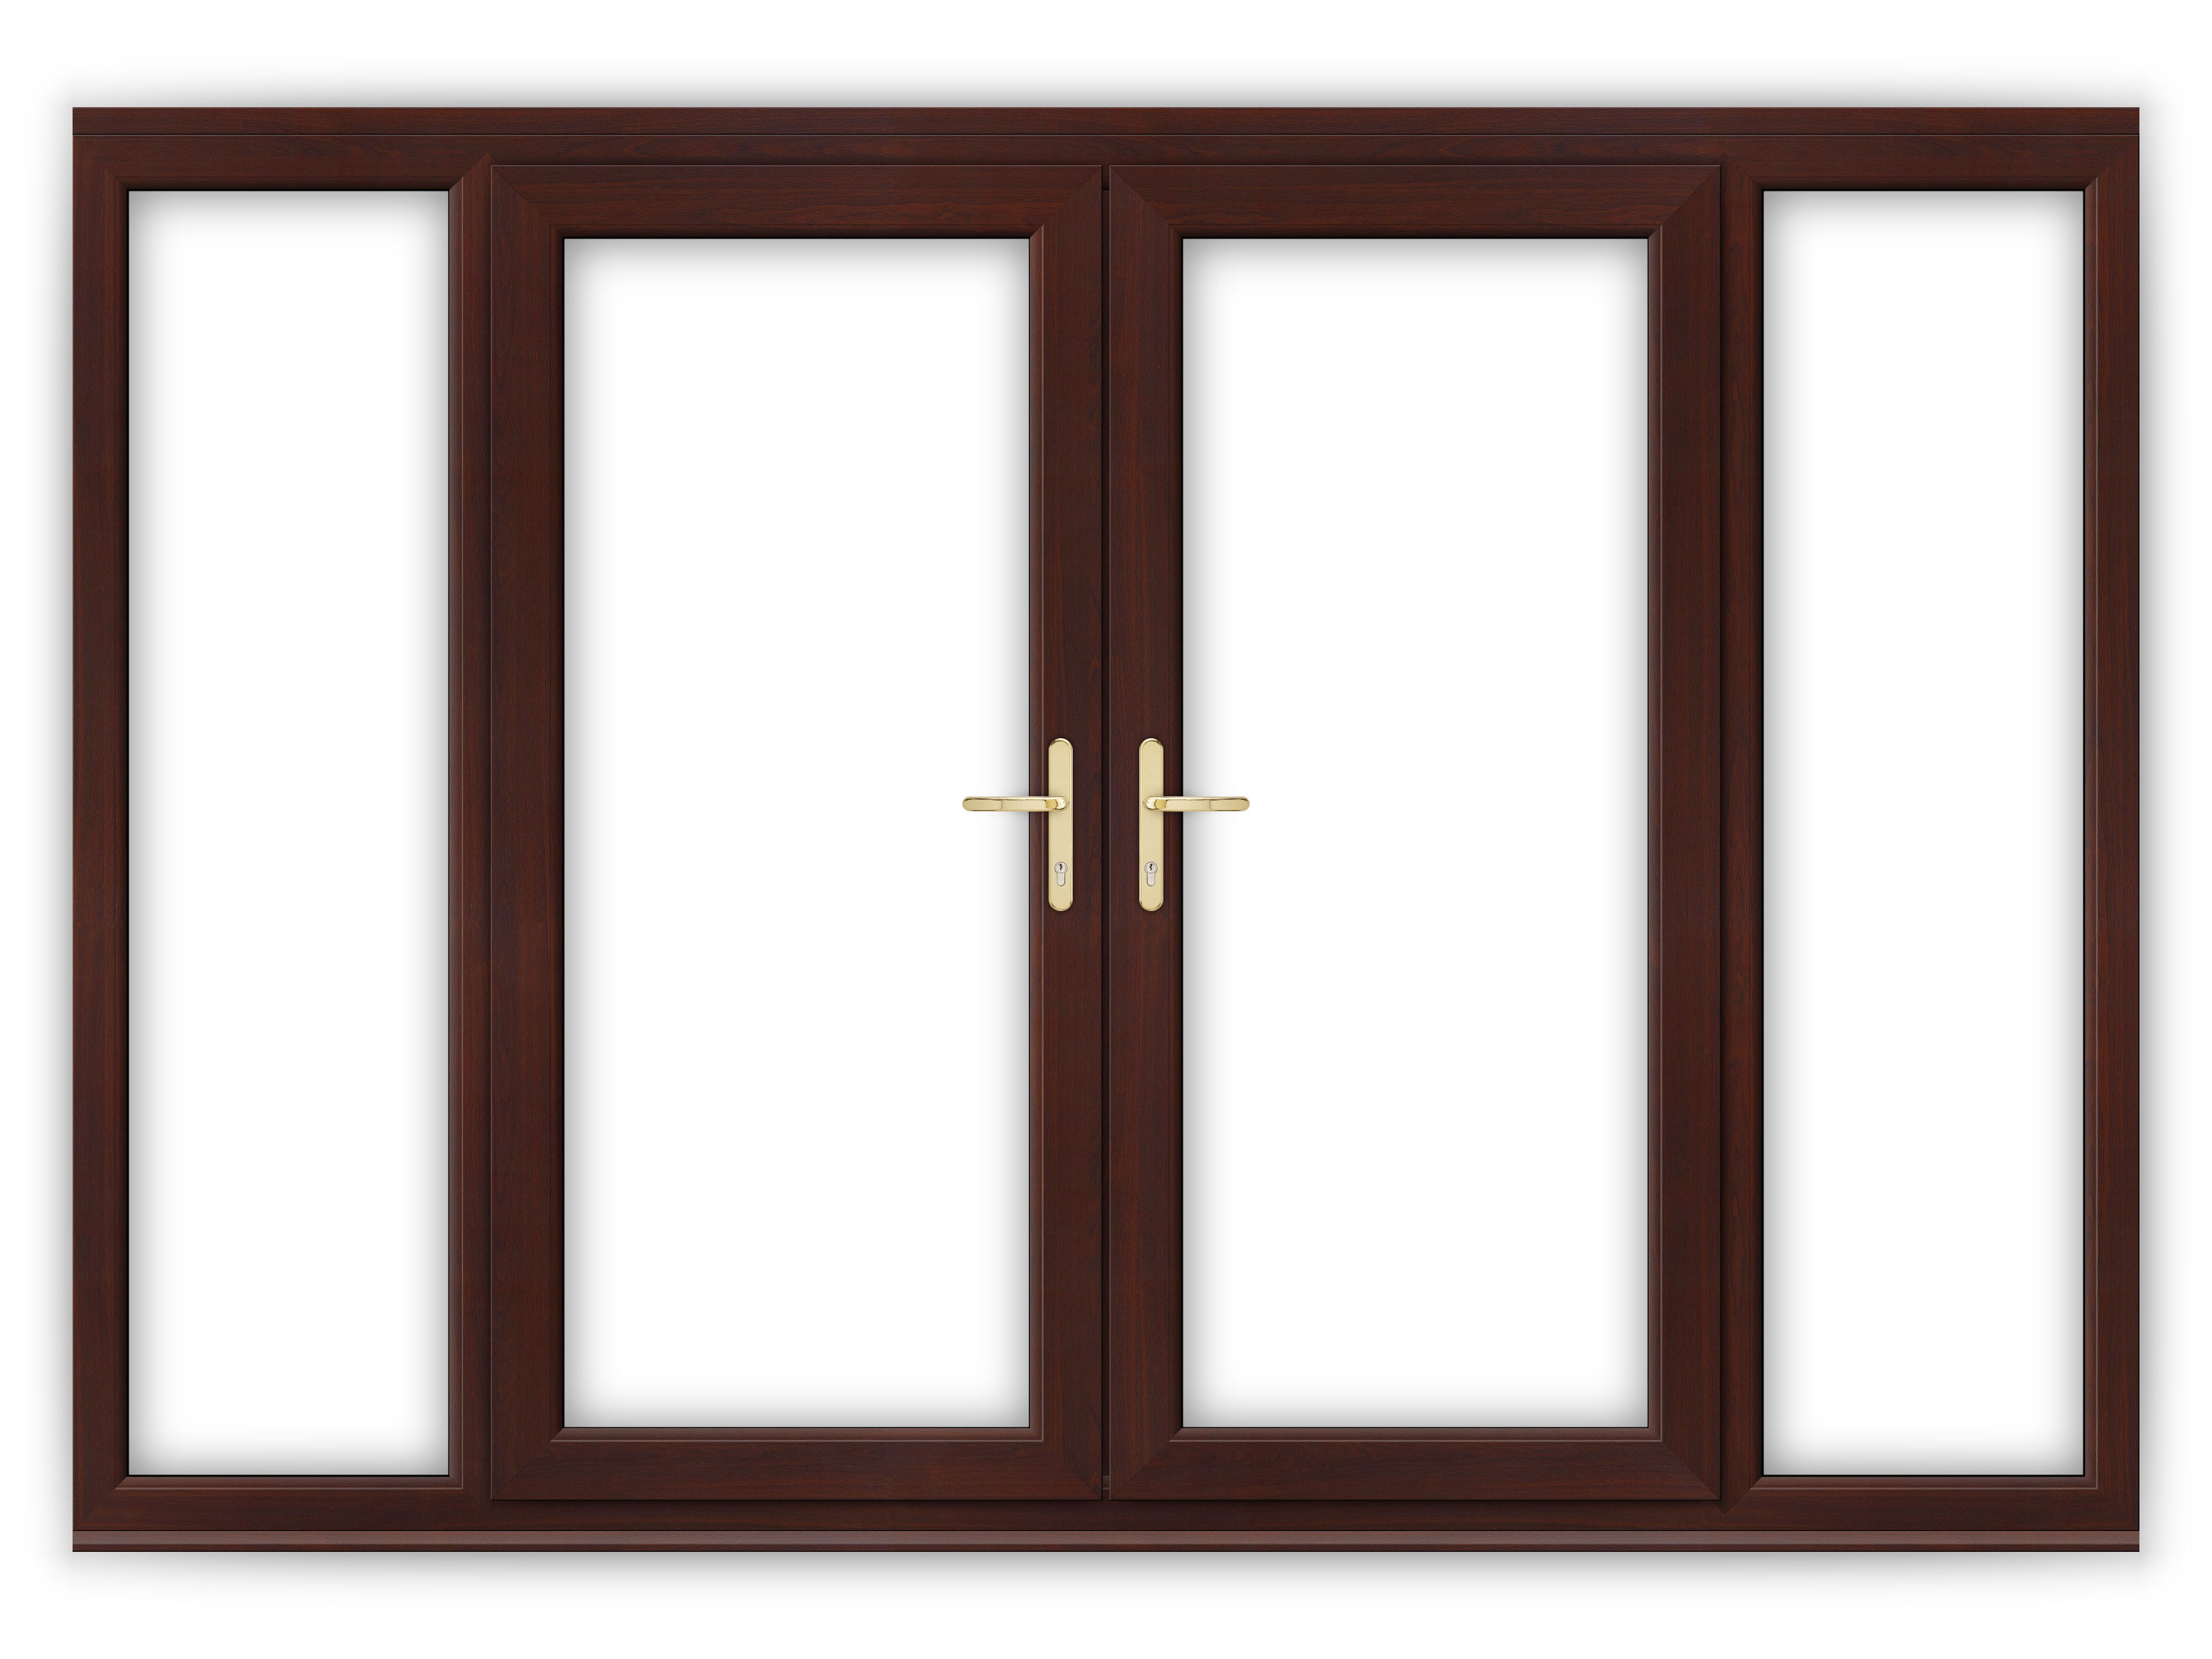 6ft rosewood upvc french doors with wide side panels for 6 ft wide french doors